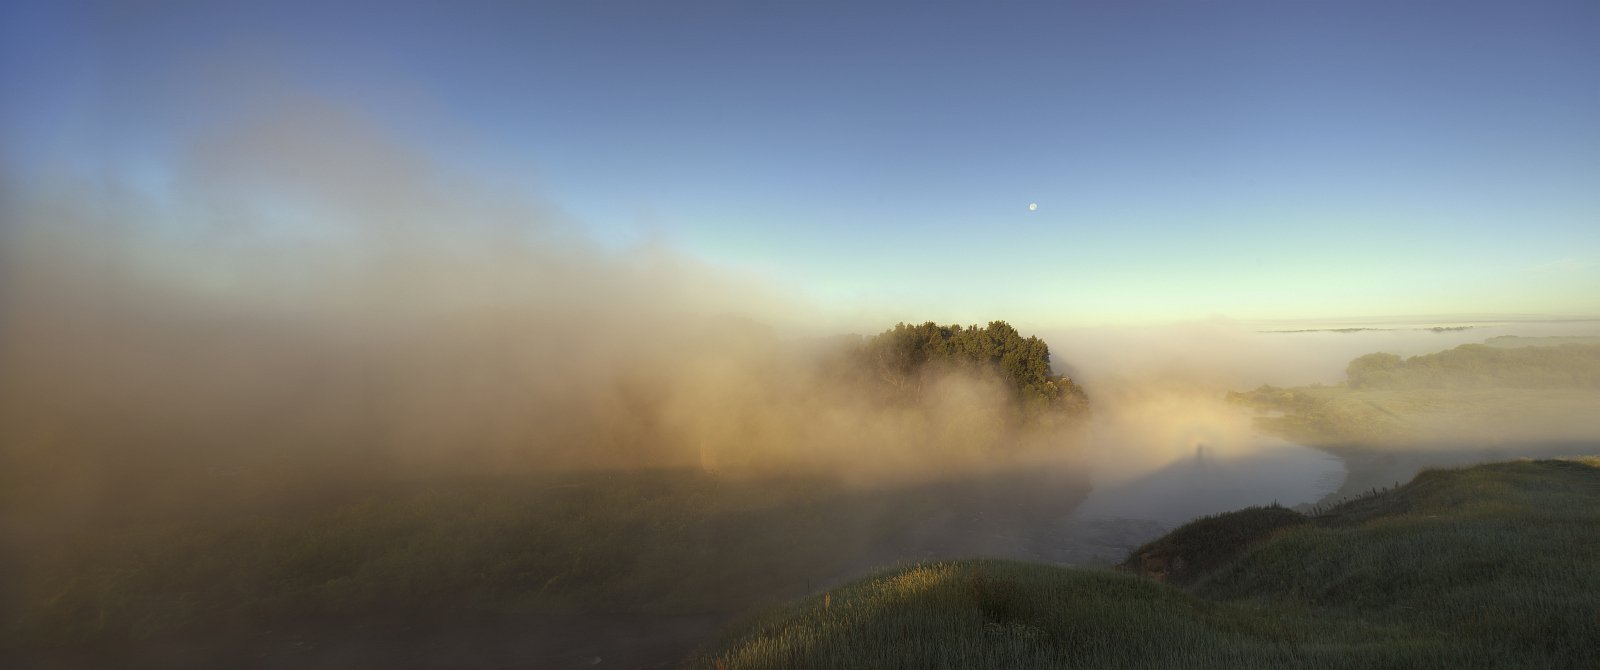 landscape, nature, light, summer, sunrise, river, mist, fog, Ефимов Александр